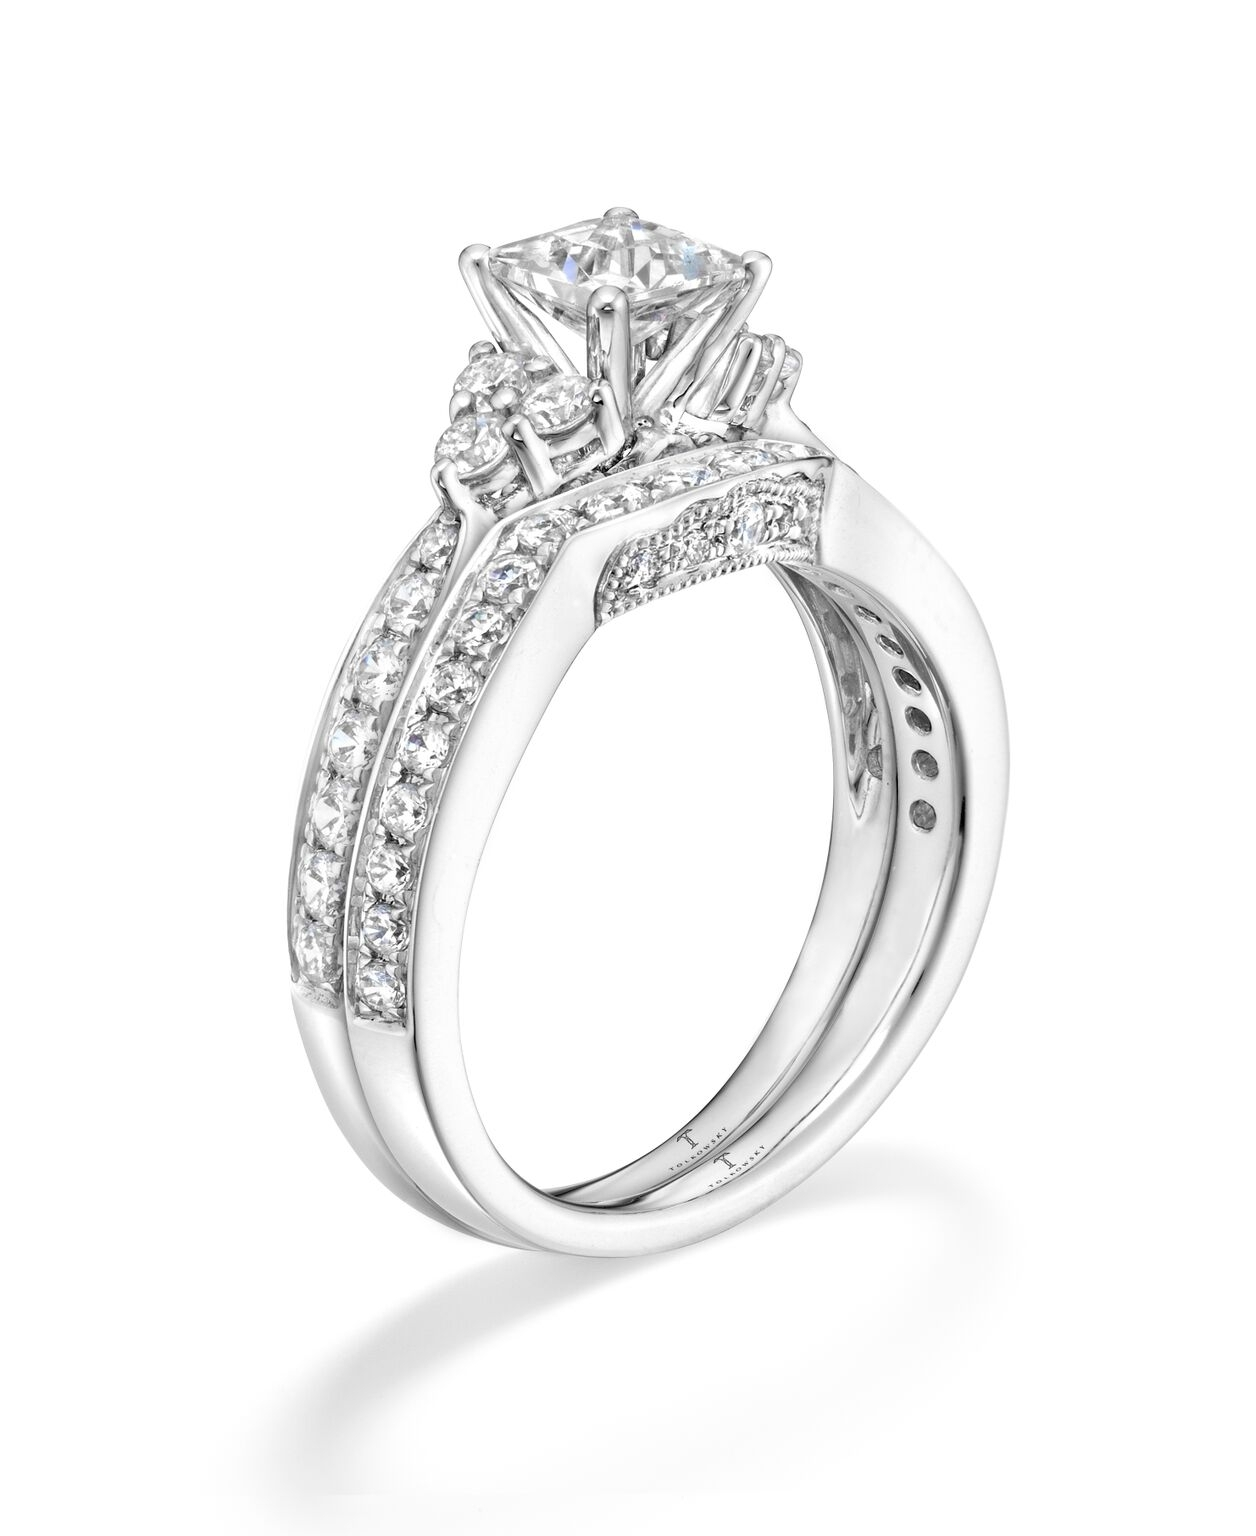 Tolkowsky Diamond Bridal Set In 14k White Gold (View 13 of 15)